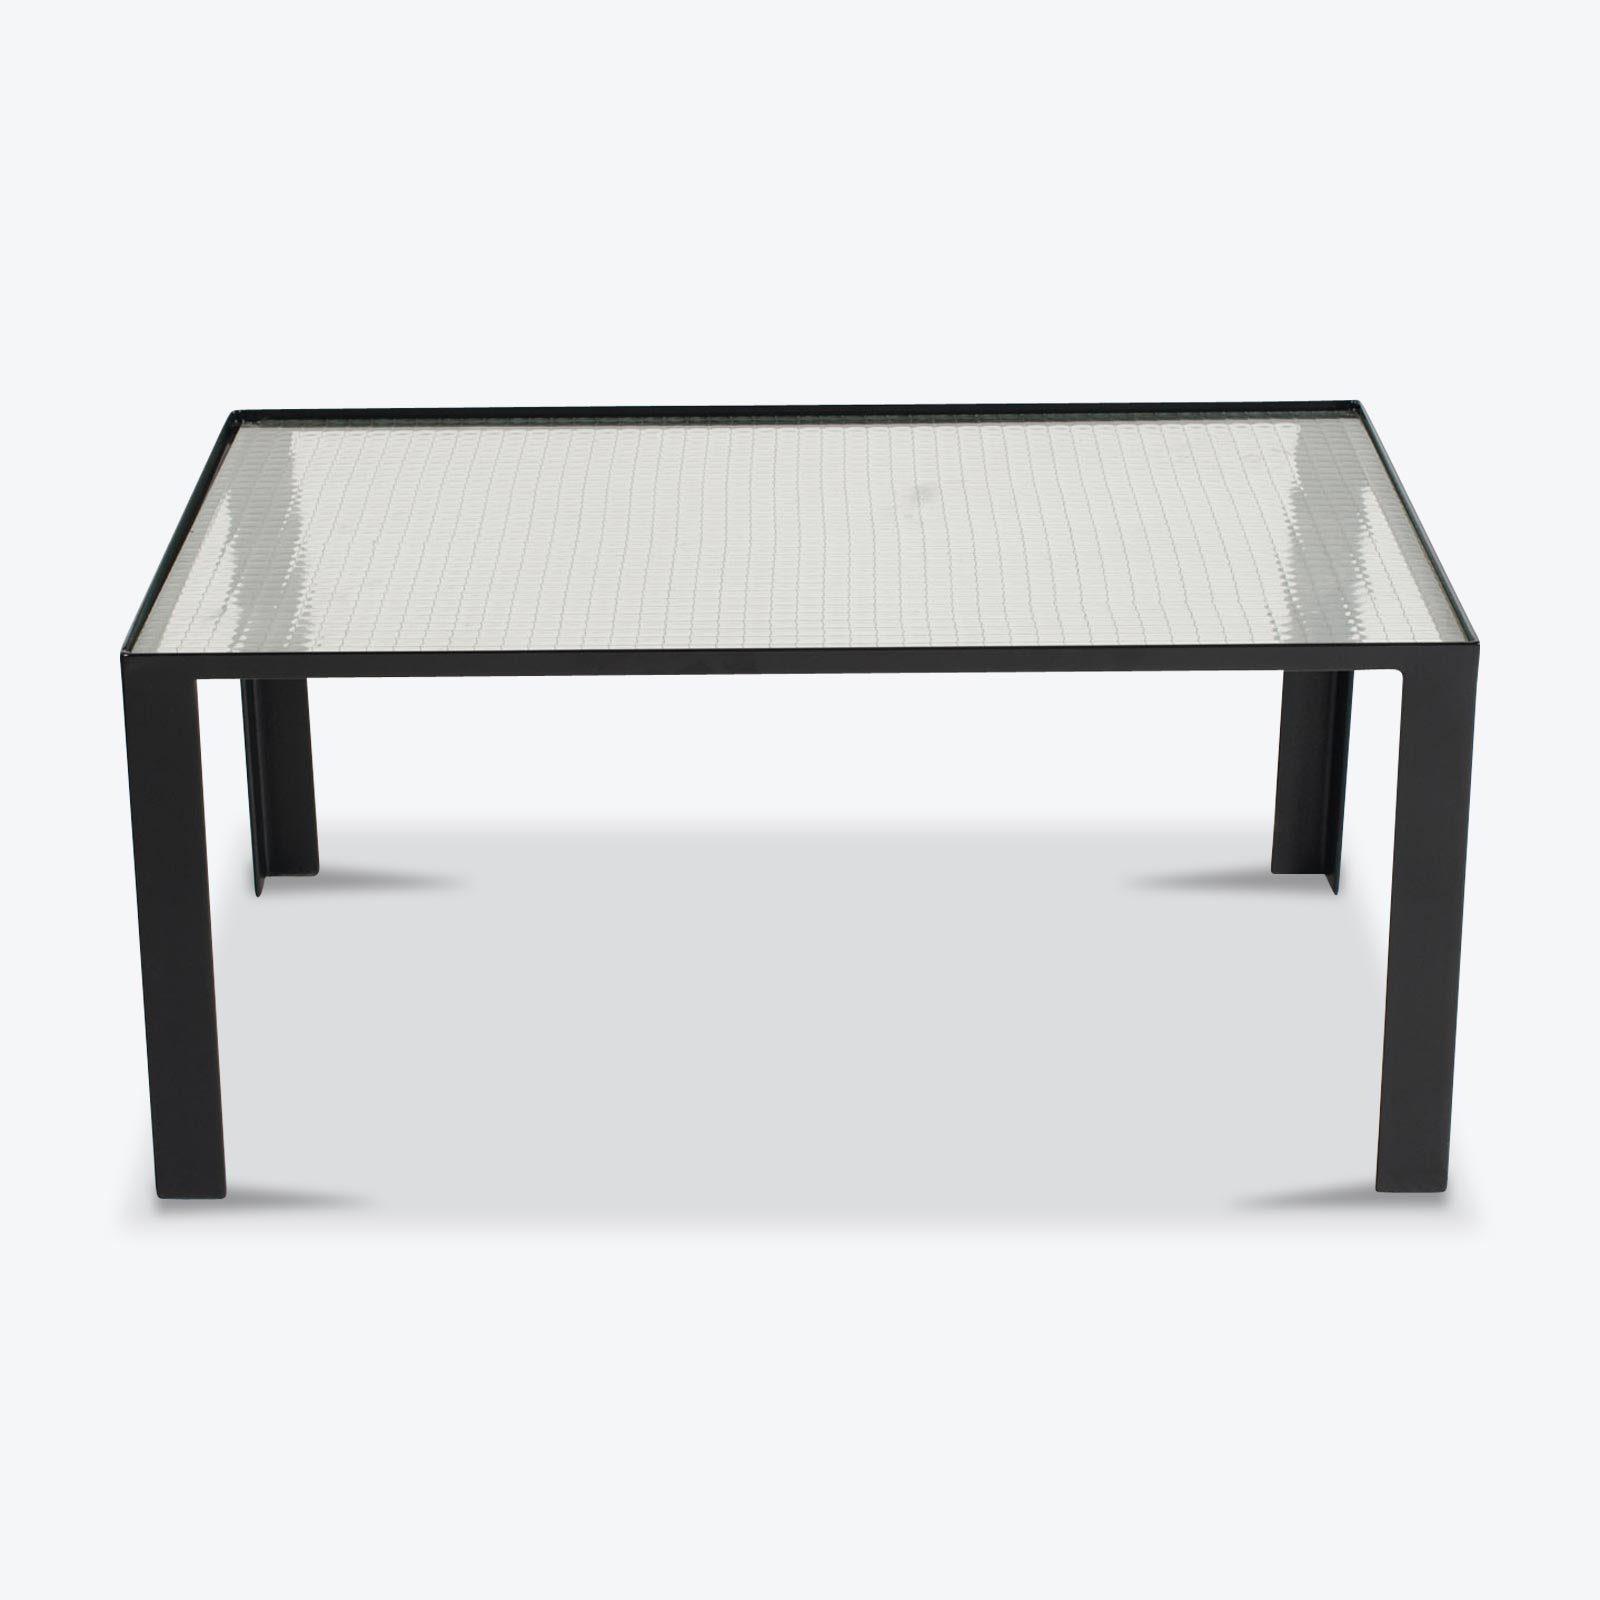 Rectangular Coffee Table With Steel Frame And Glass 1970s Netherlands 00.jpg